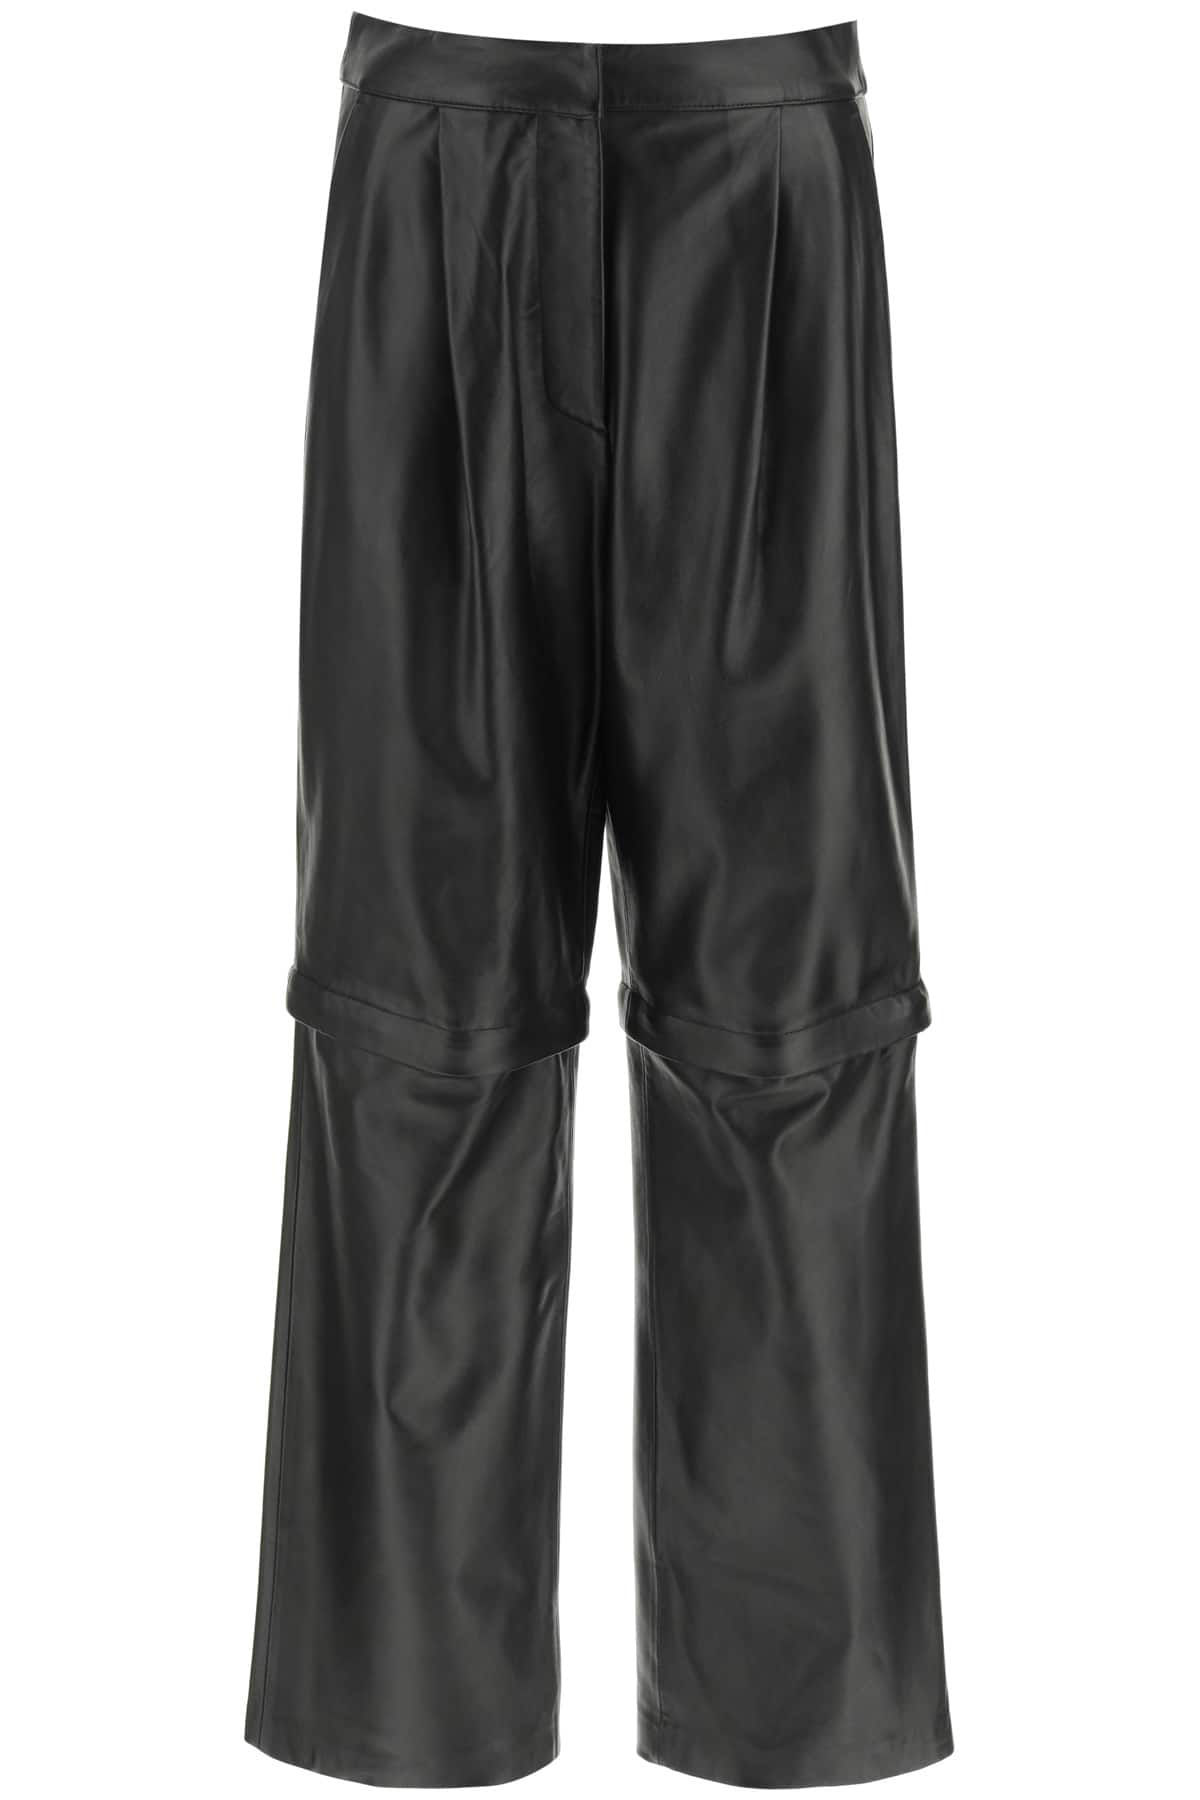 SPORTMAX 2 IN 1 NAPPA TROUSERS 38 Black Leather